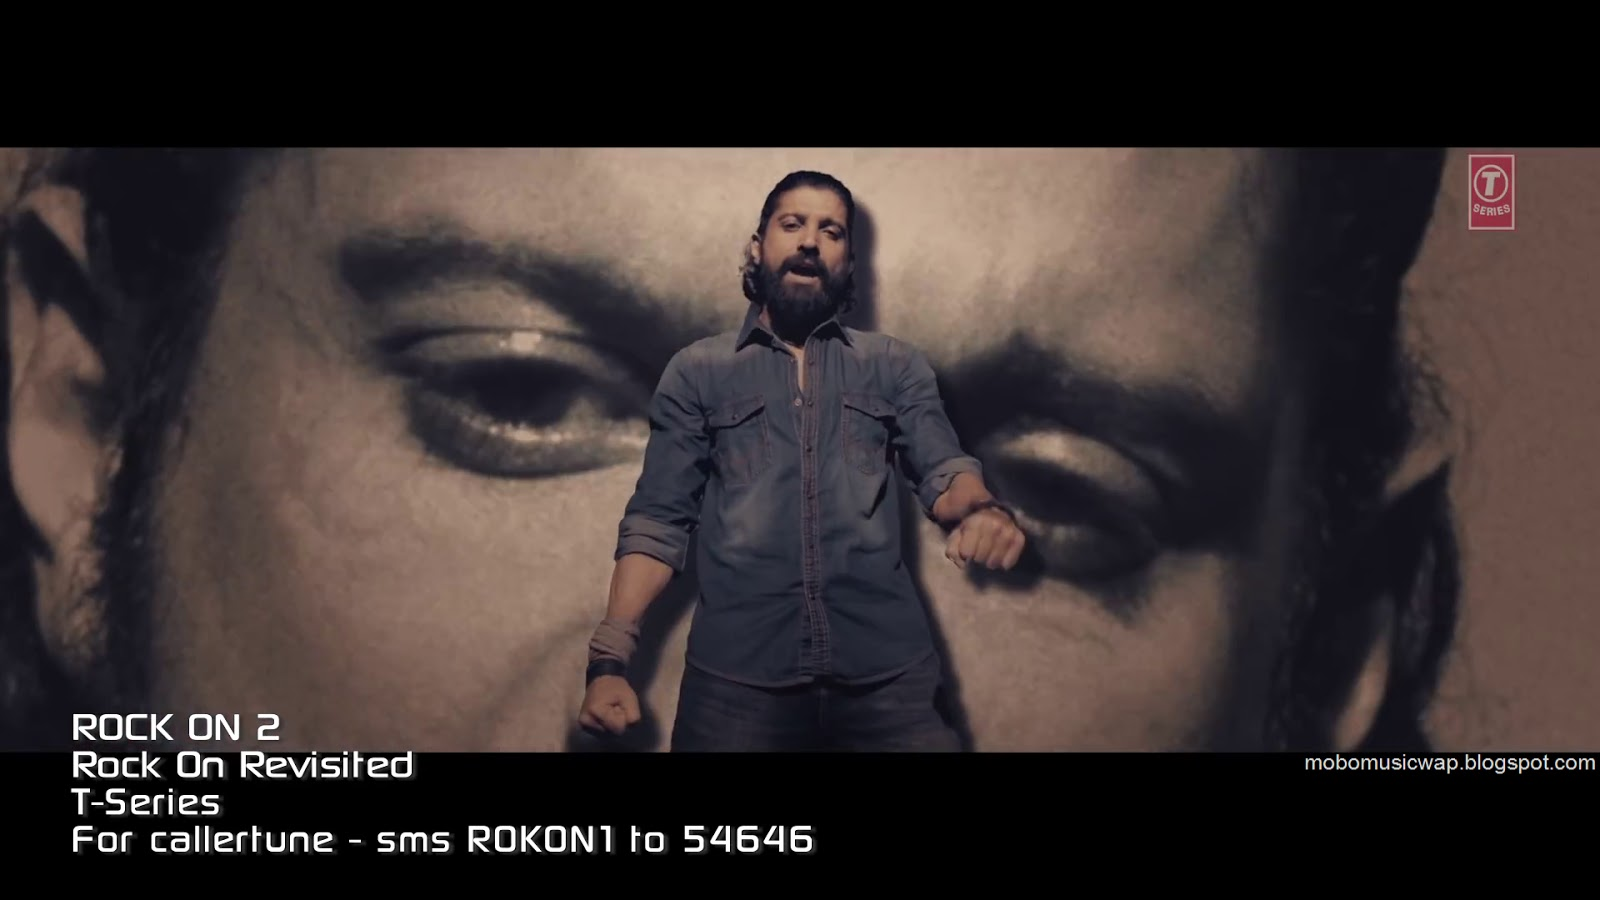 rock on video songs free download